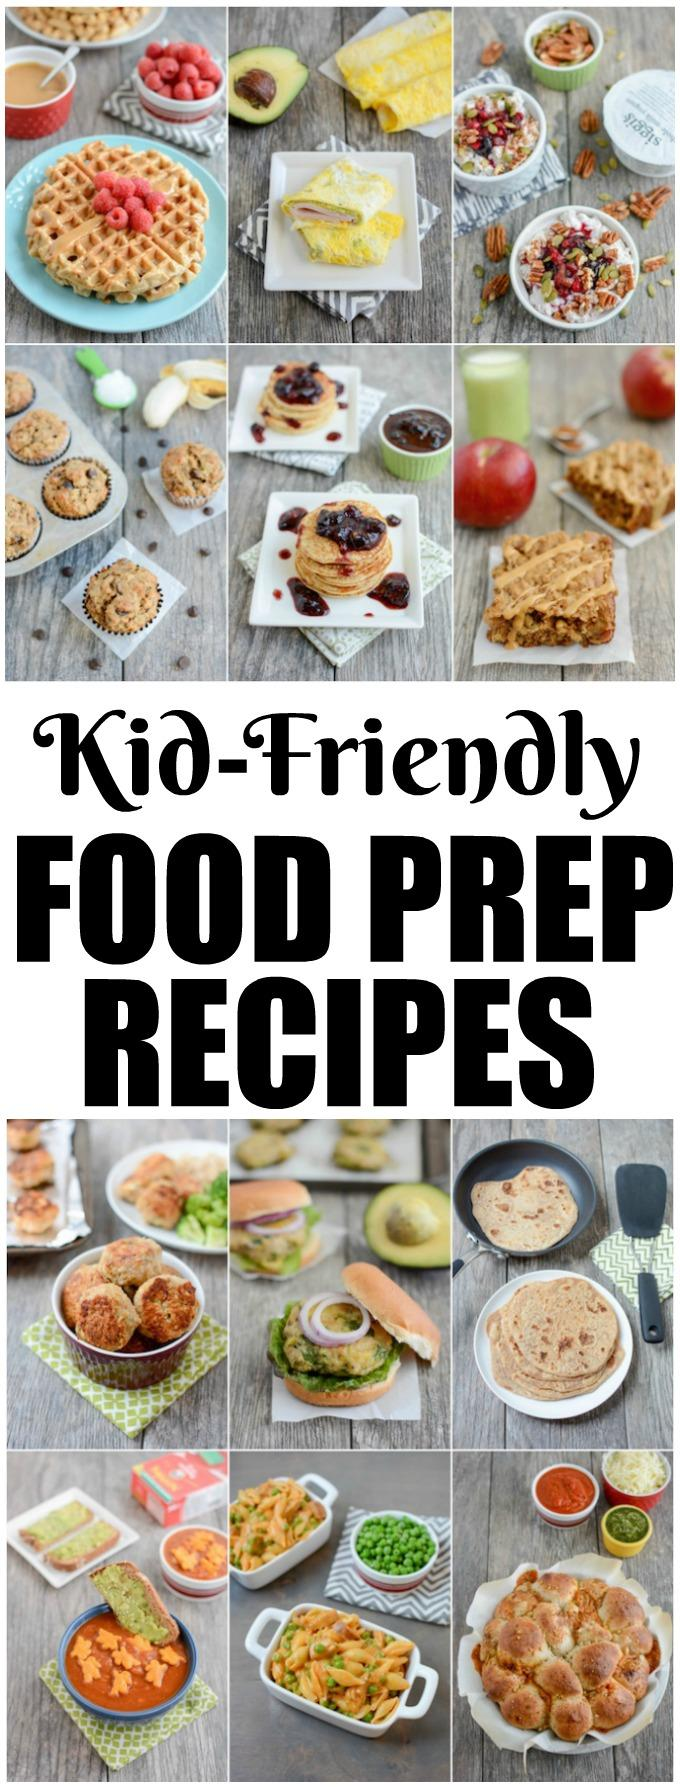 These Kid-Friendly Food Prep Recipes are great additions to your weekly meal prep sessions. Having healthy options on hand for breakfast, lunch, dinner and snack time can help you eat healthy during busy weeks!